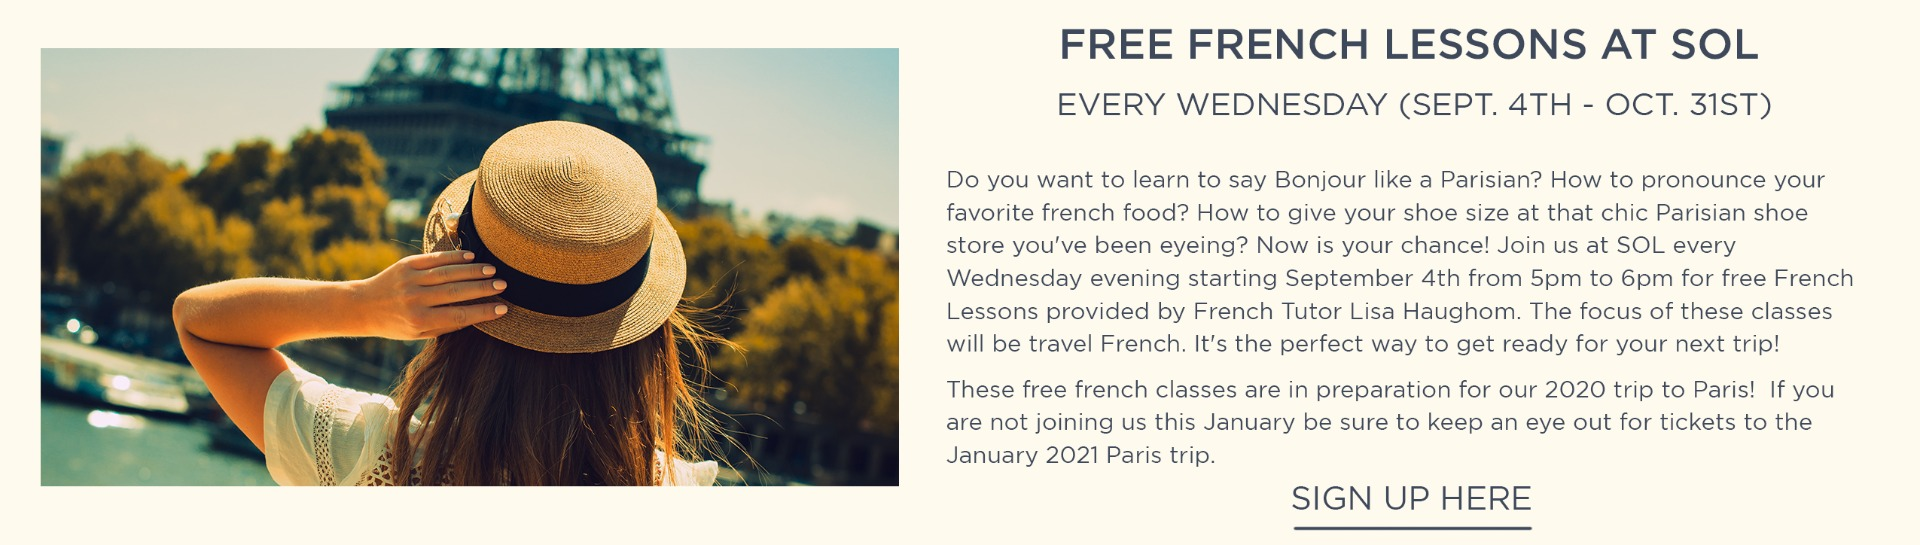 Free French Lessons at SOL